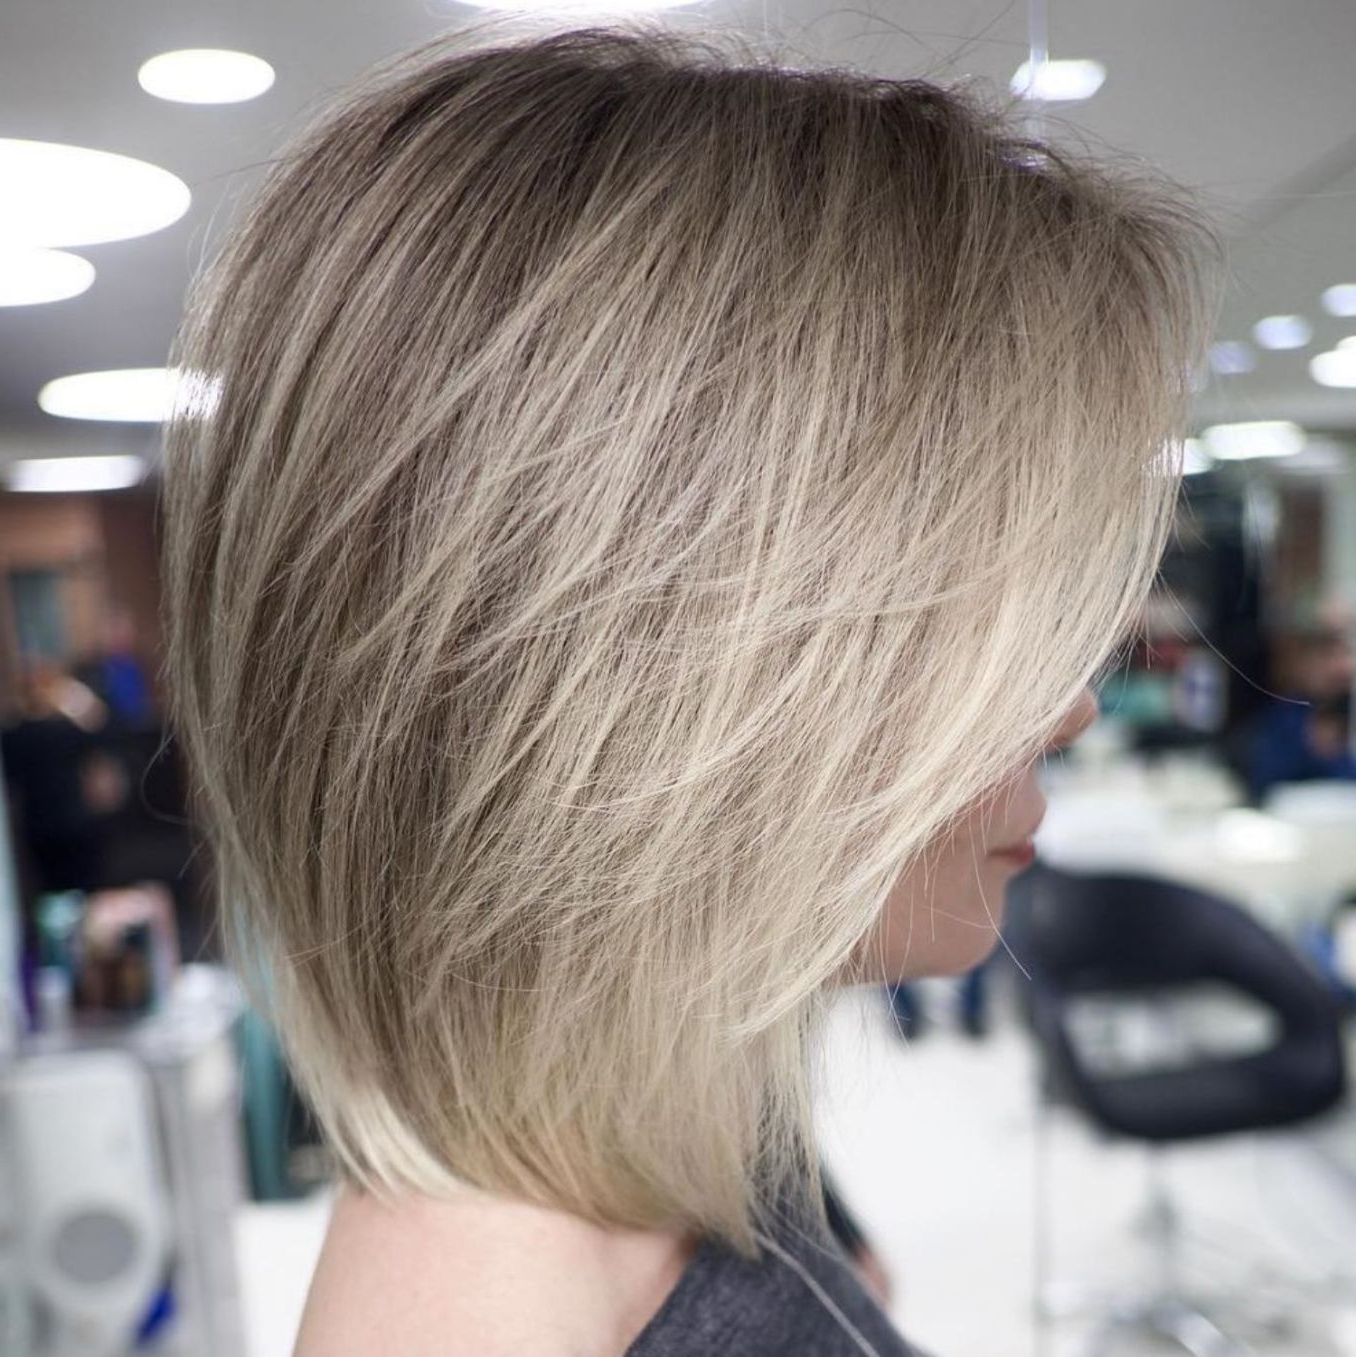 Current Long Feathered Bangs Hairstyles With Inverted Bob For 60 Layered Bob Styles: Modern Haircuts With Layers For Any (View 11 of 20)